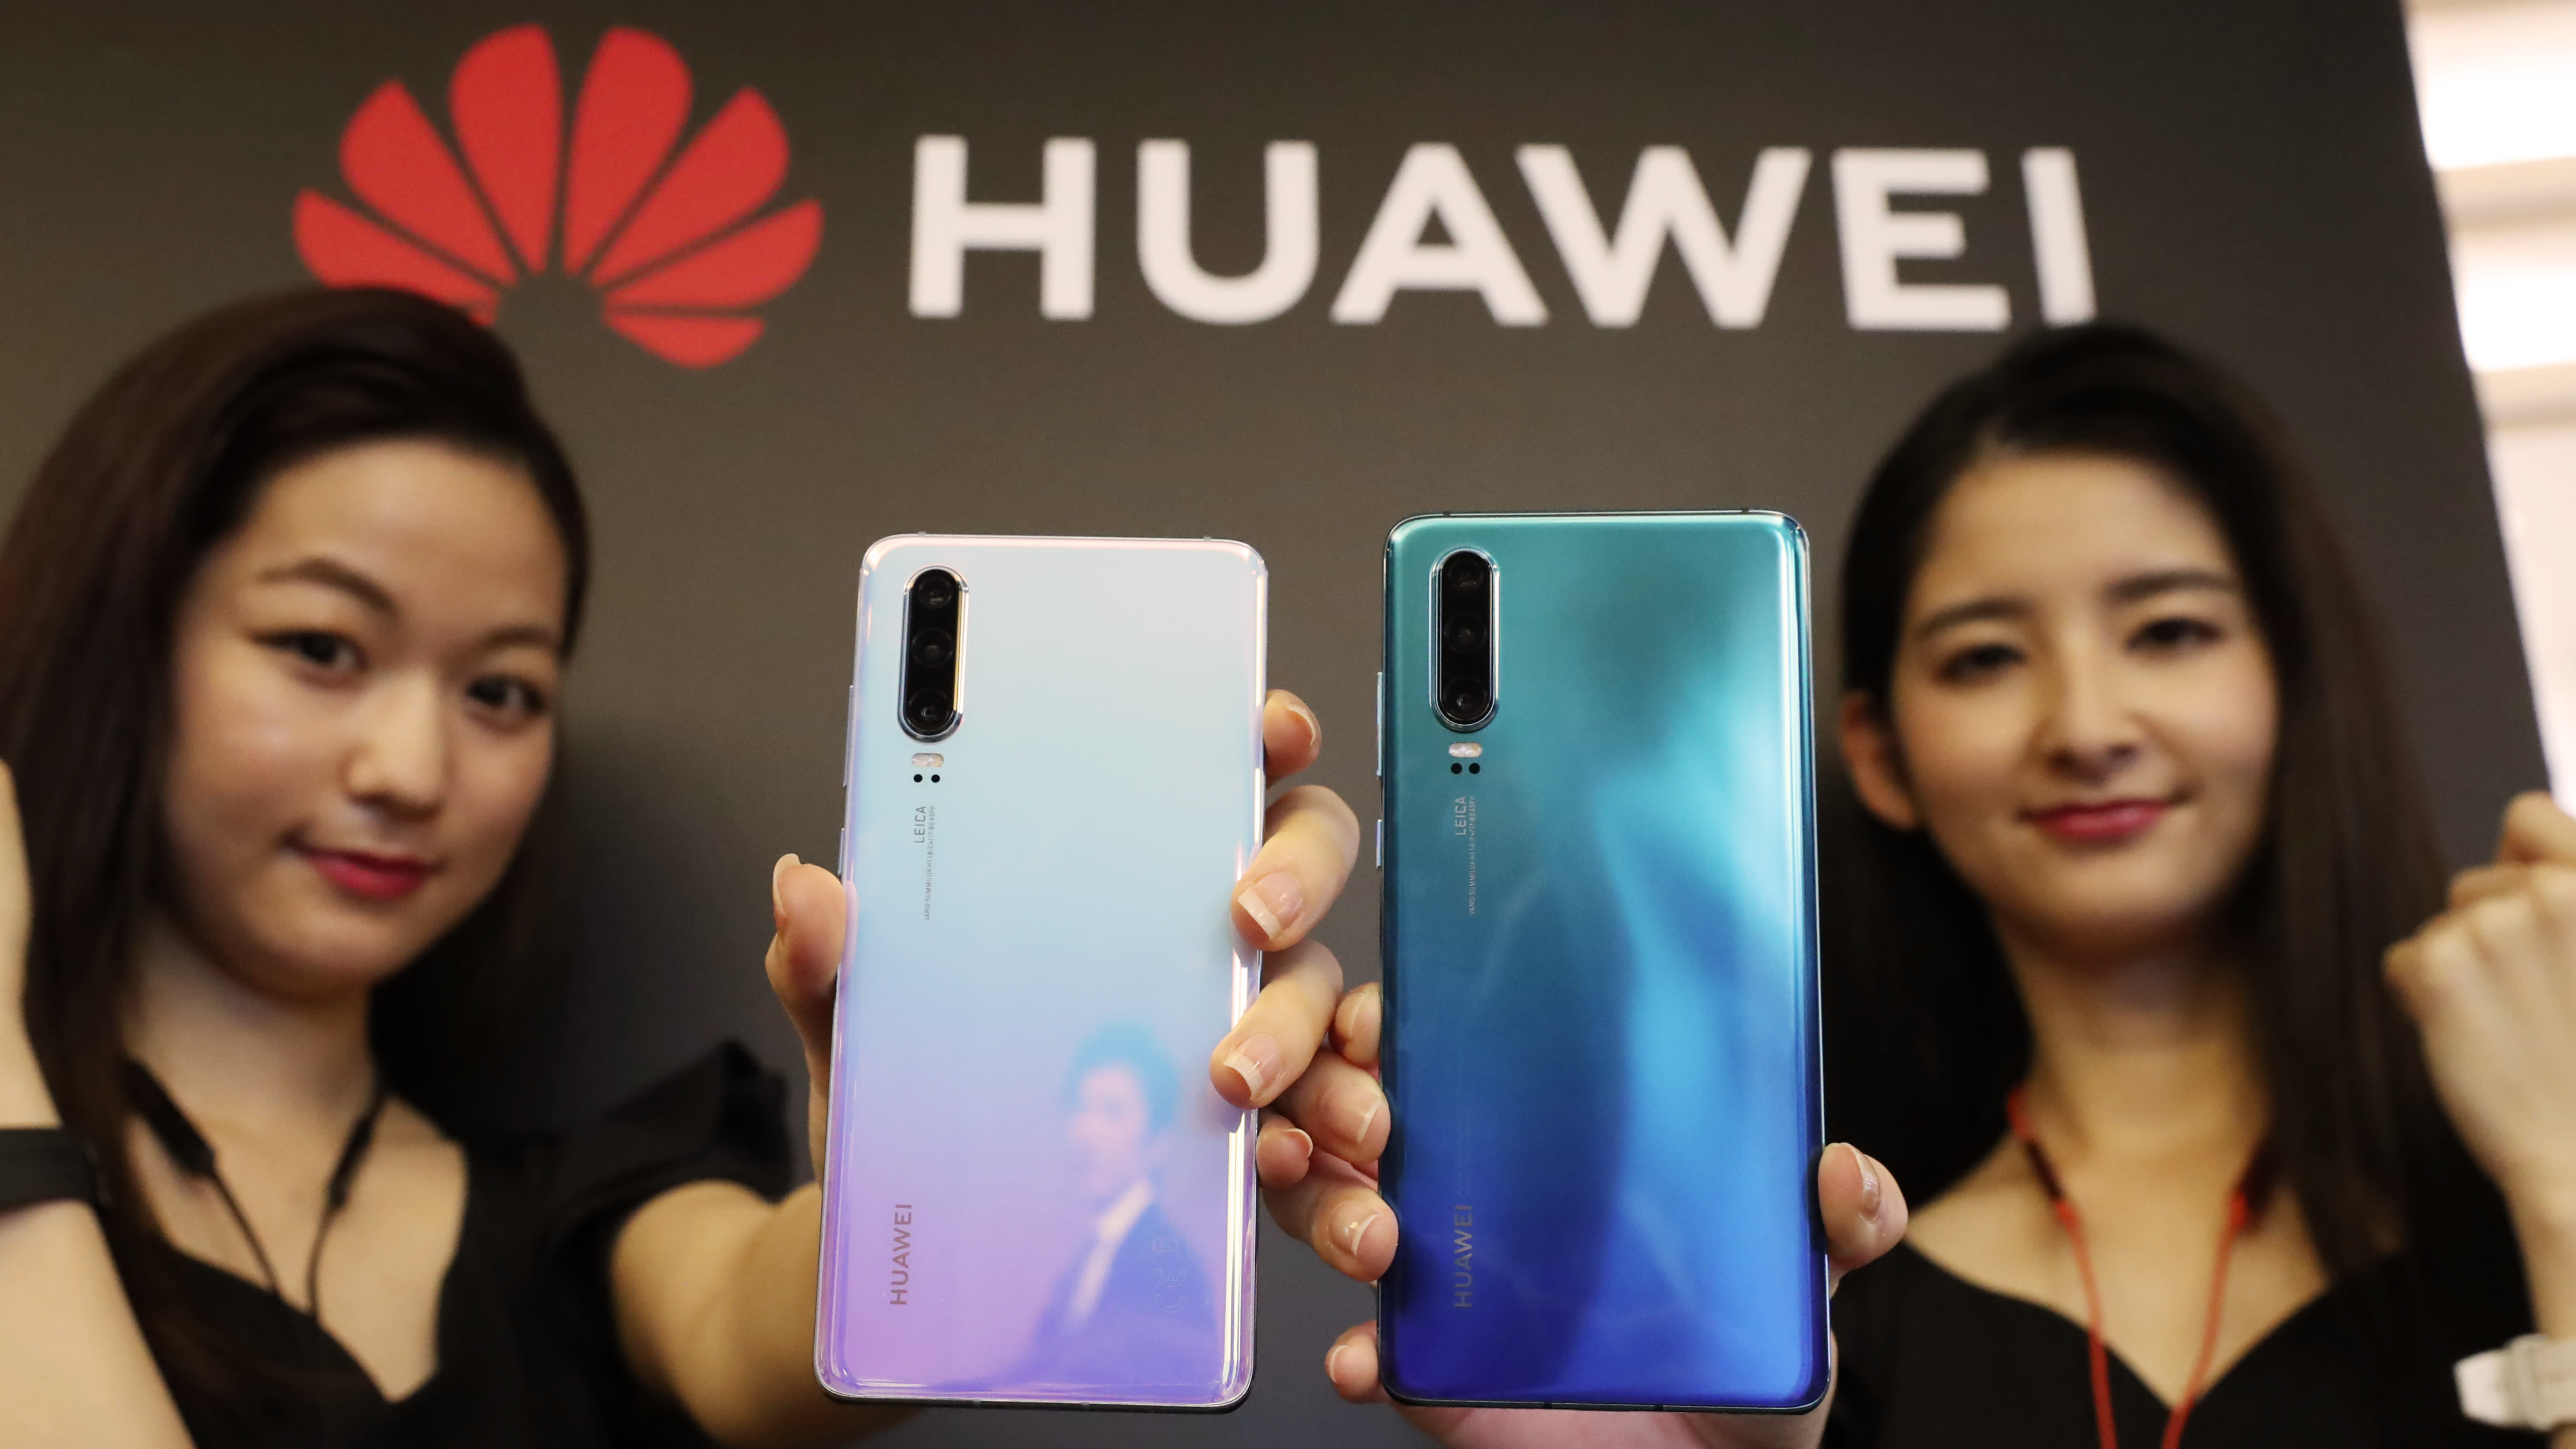 Huawei acknowledges users of P30 and P30 Pro may not be updated to Android 10